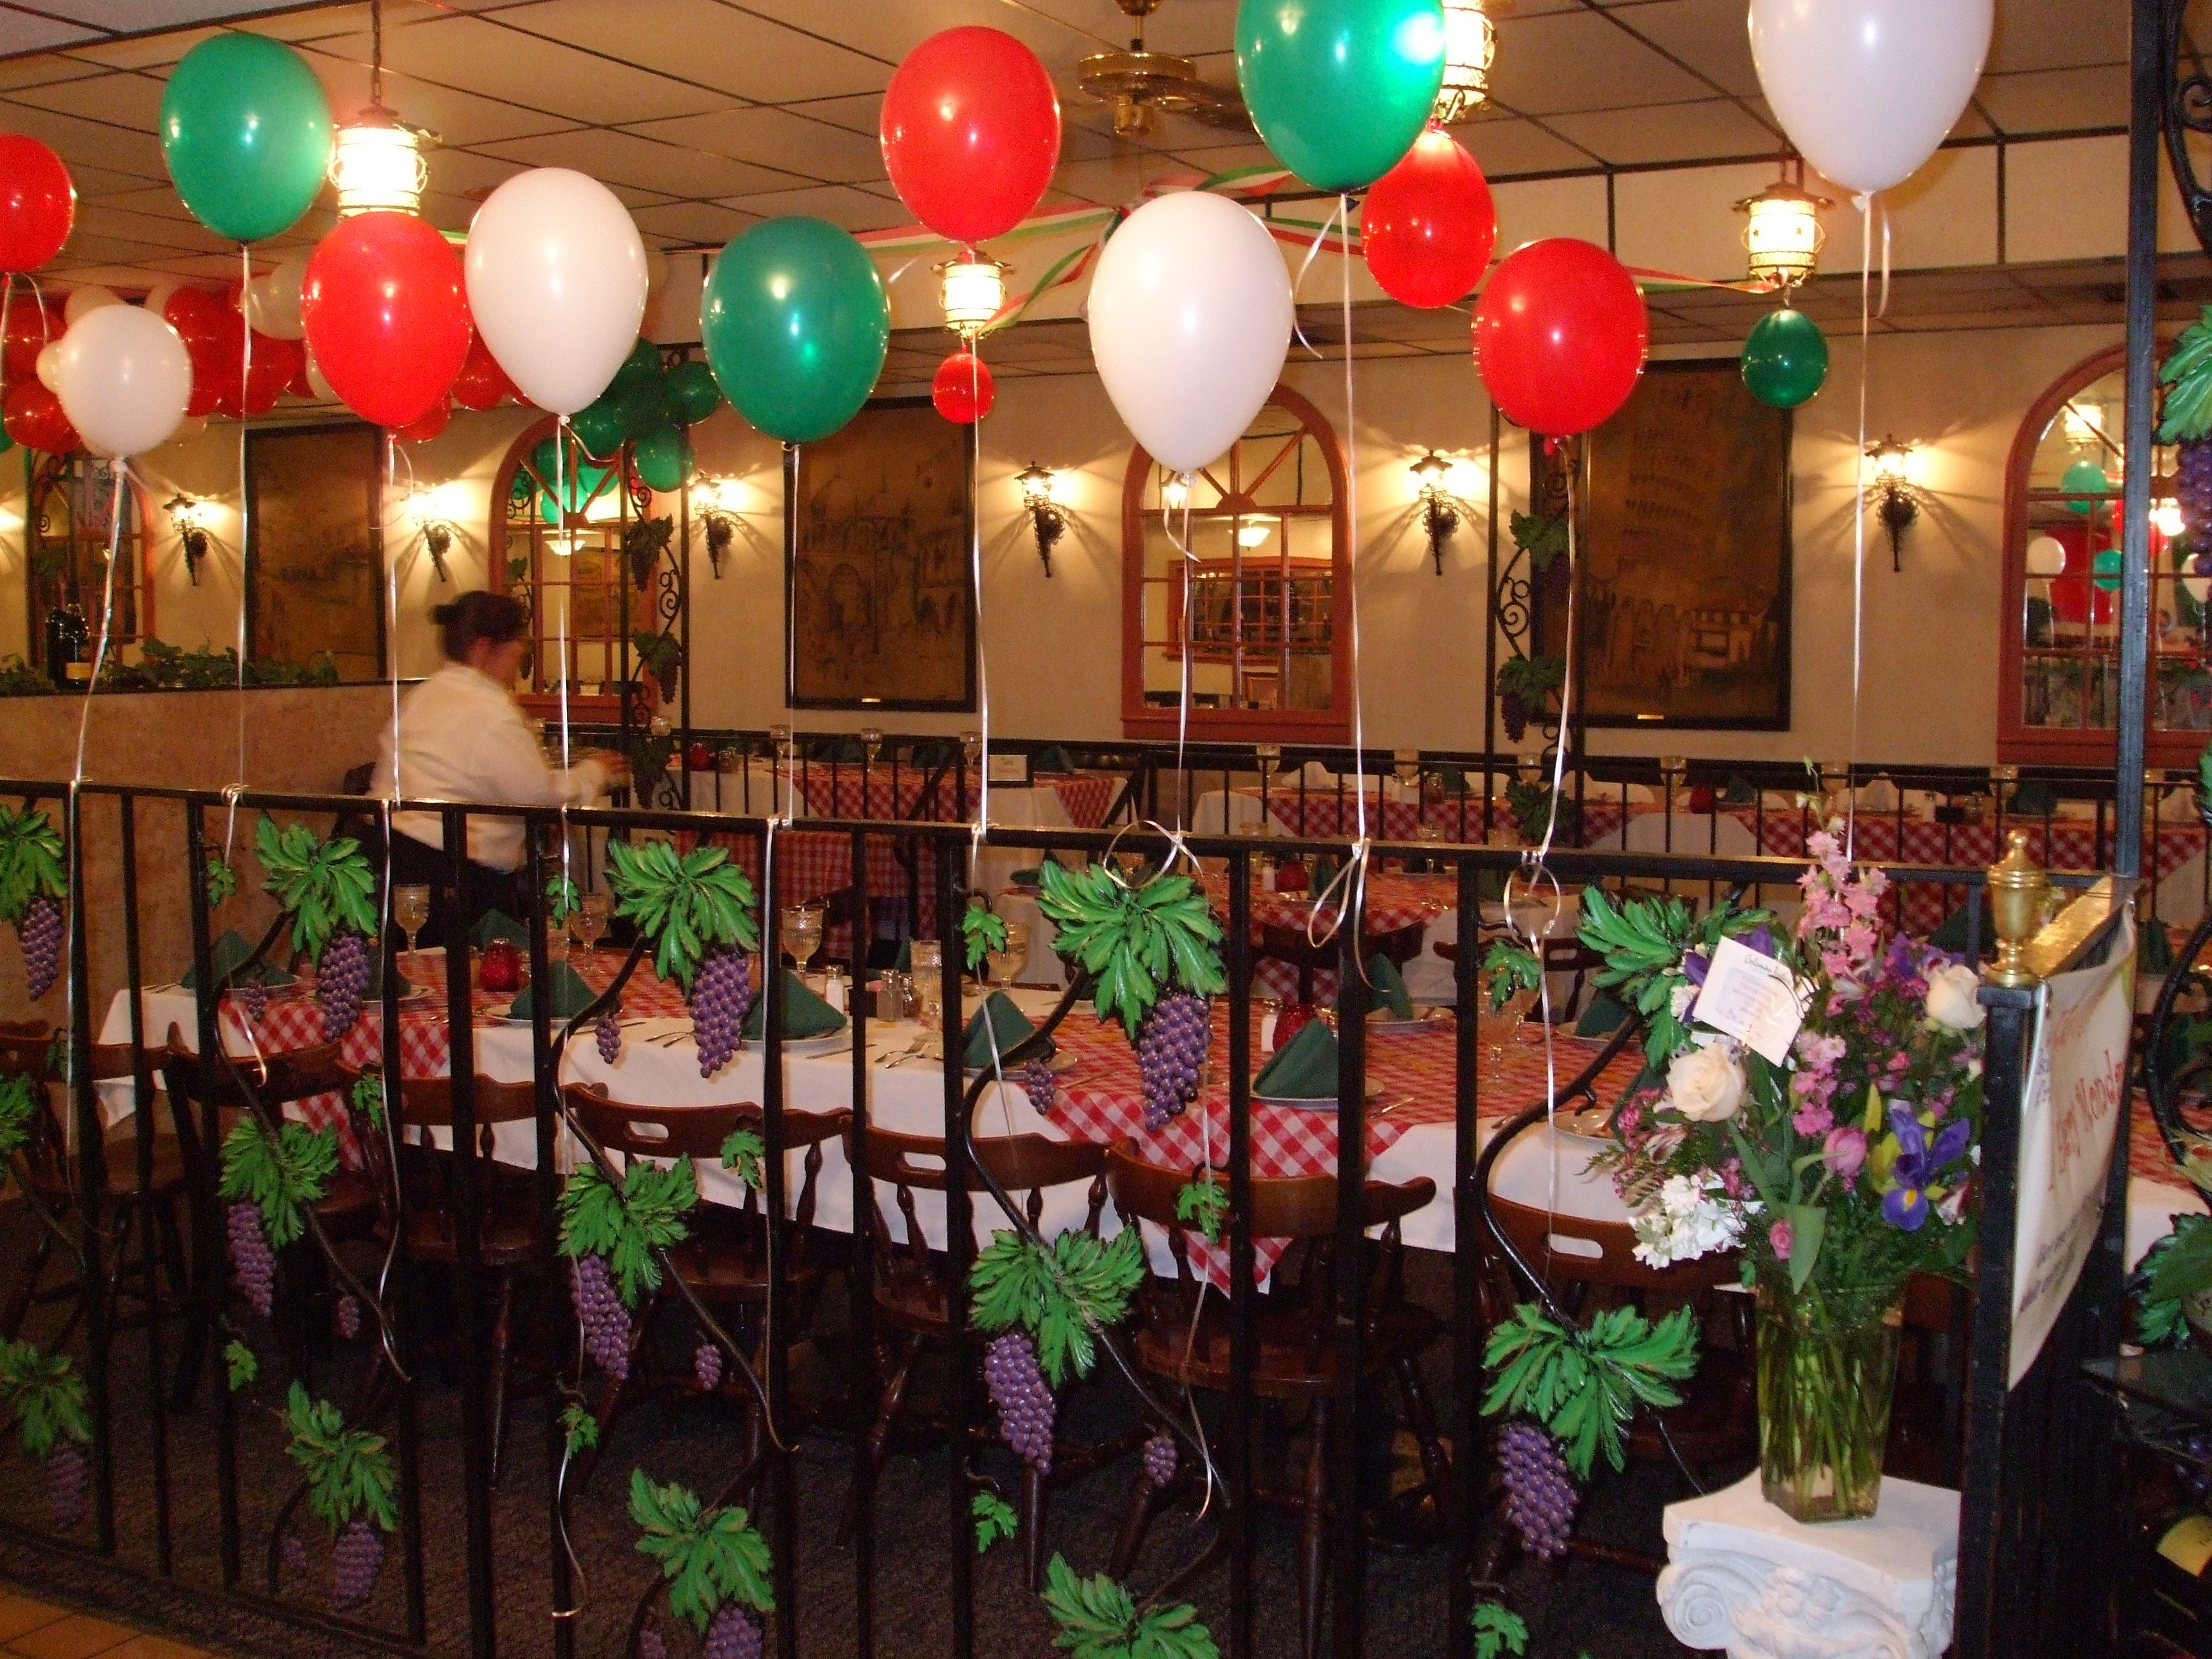 Italian Themed Dinner Party Ideas Part - 31: Italian Themed Party - Must Do Red, Green And White Balloons...maybe